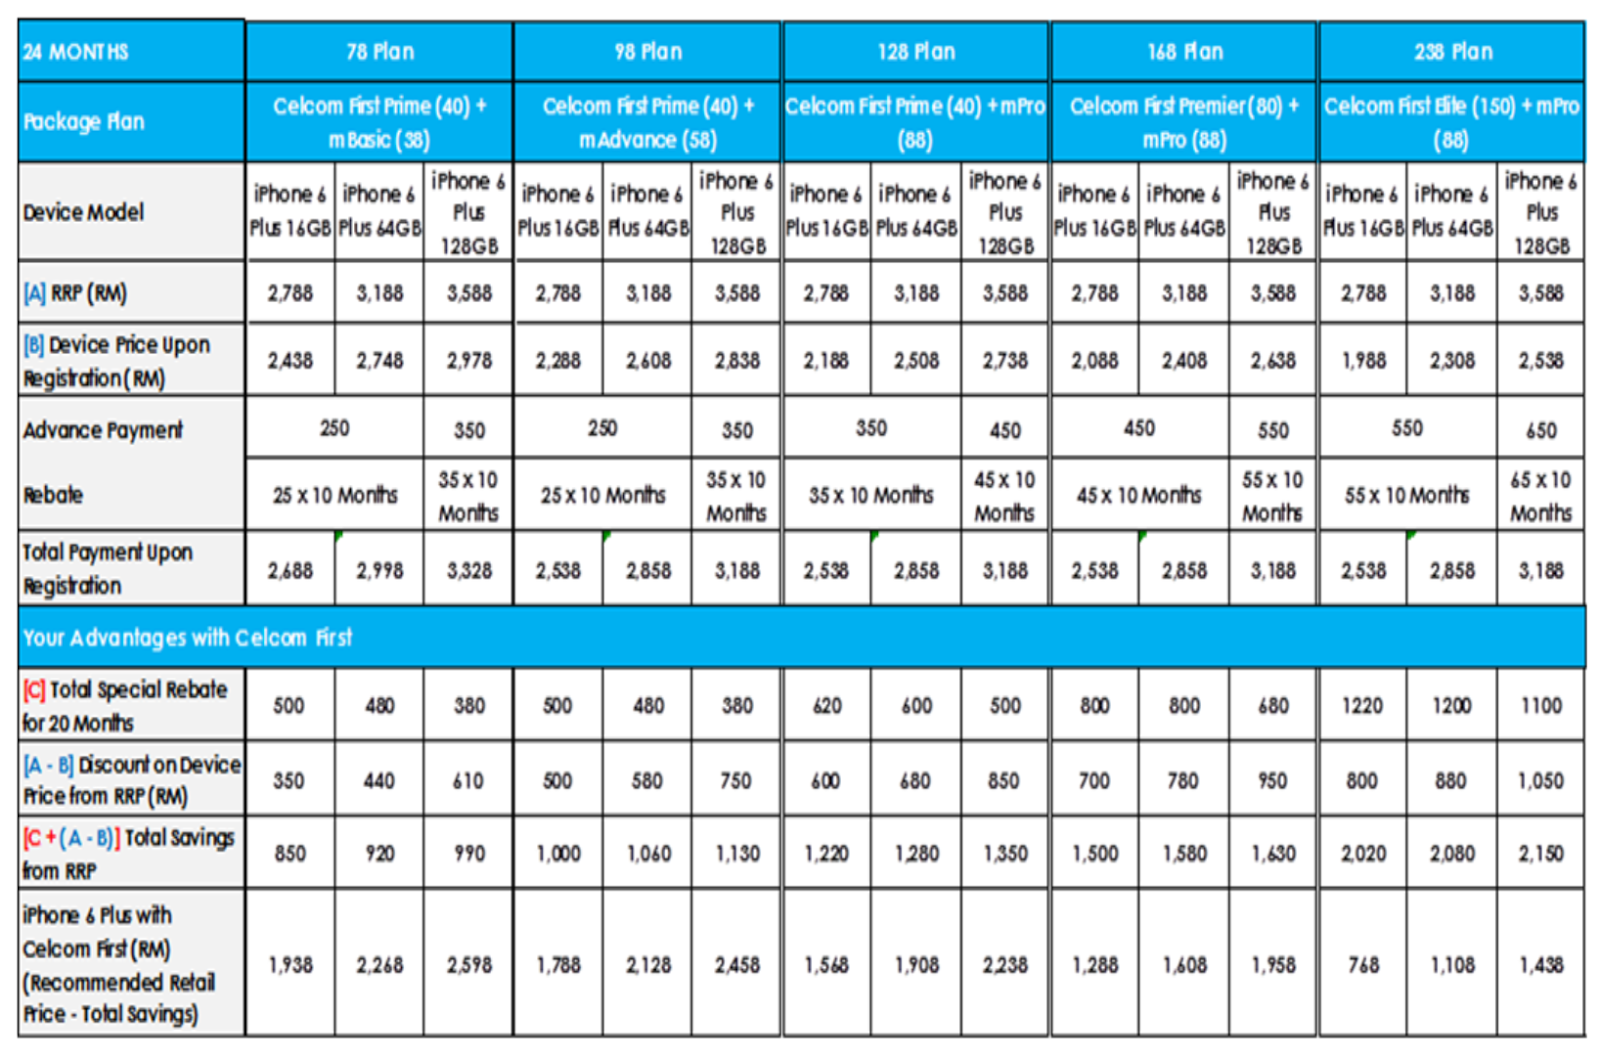 24 Months Contract Plan for the Celcom iPhone 6 Plus